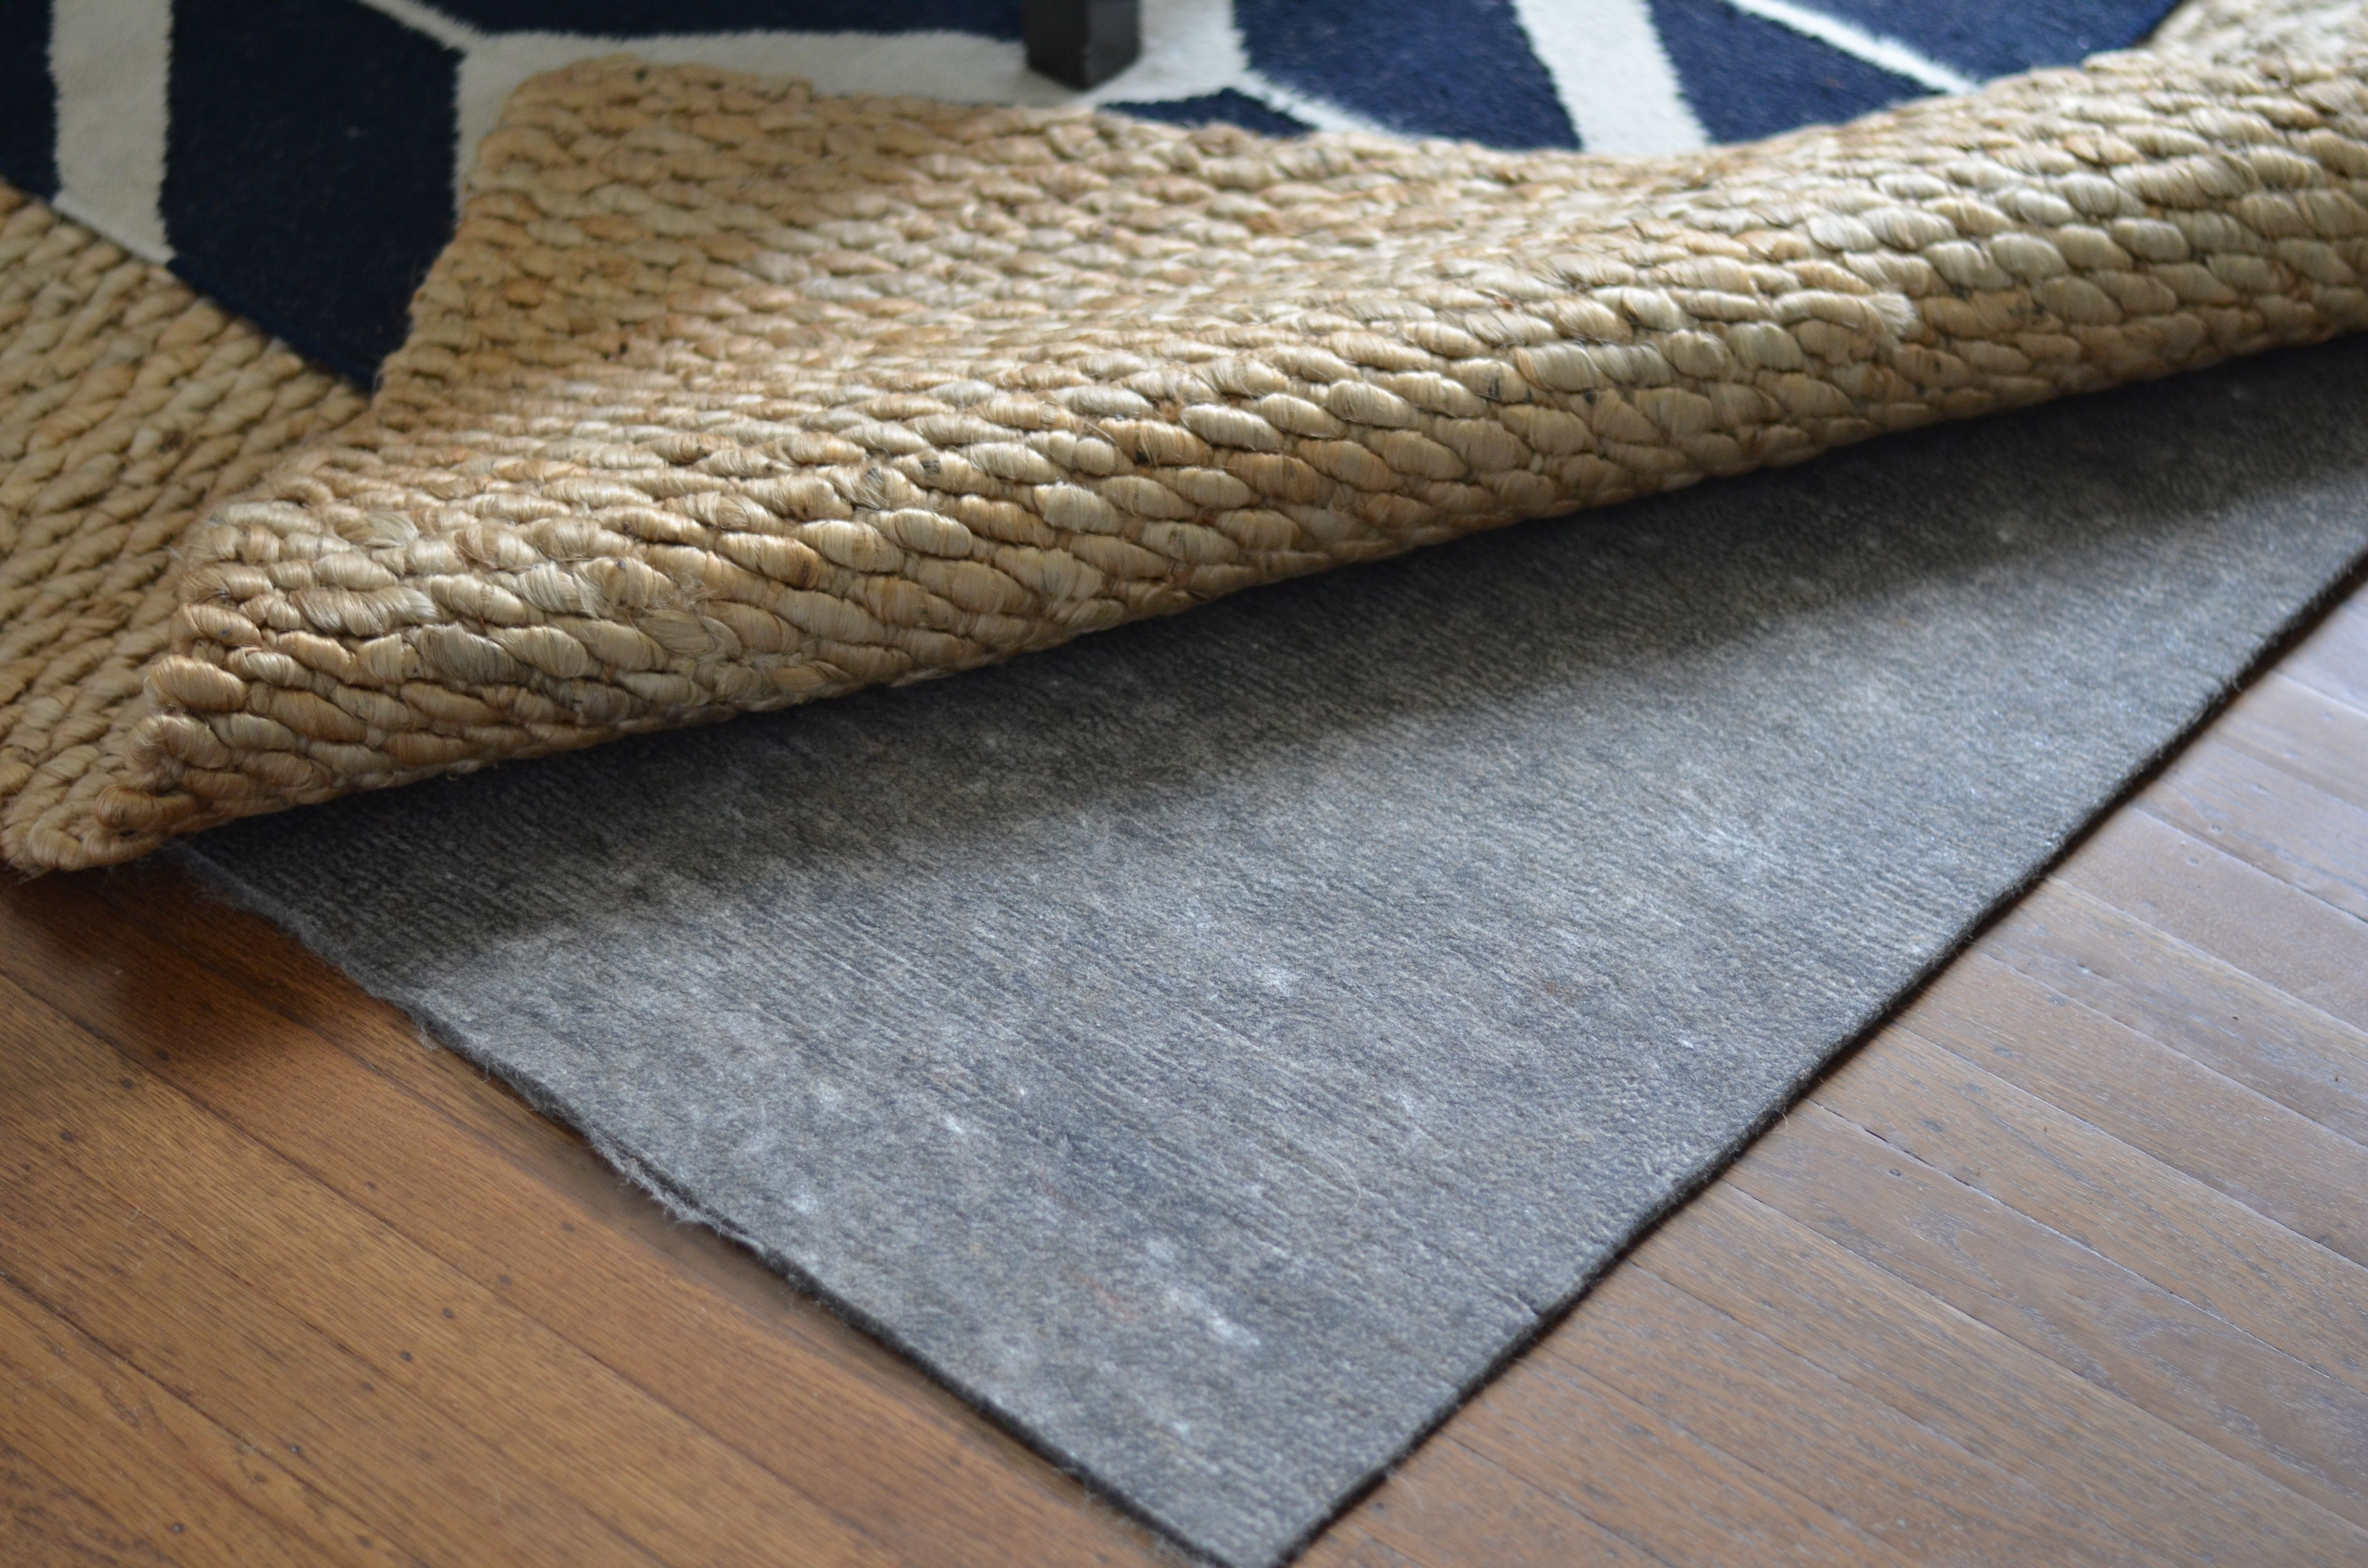 Rubber Rug Pad Stuck To Hardwood Floor If You Ever Need It Ll Enhance The Ambiance Of Any Room And Raise Val